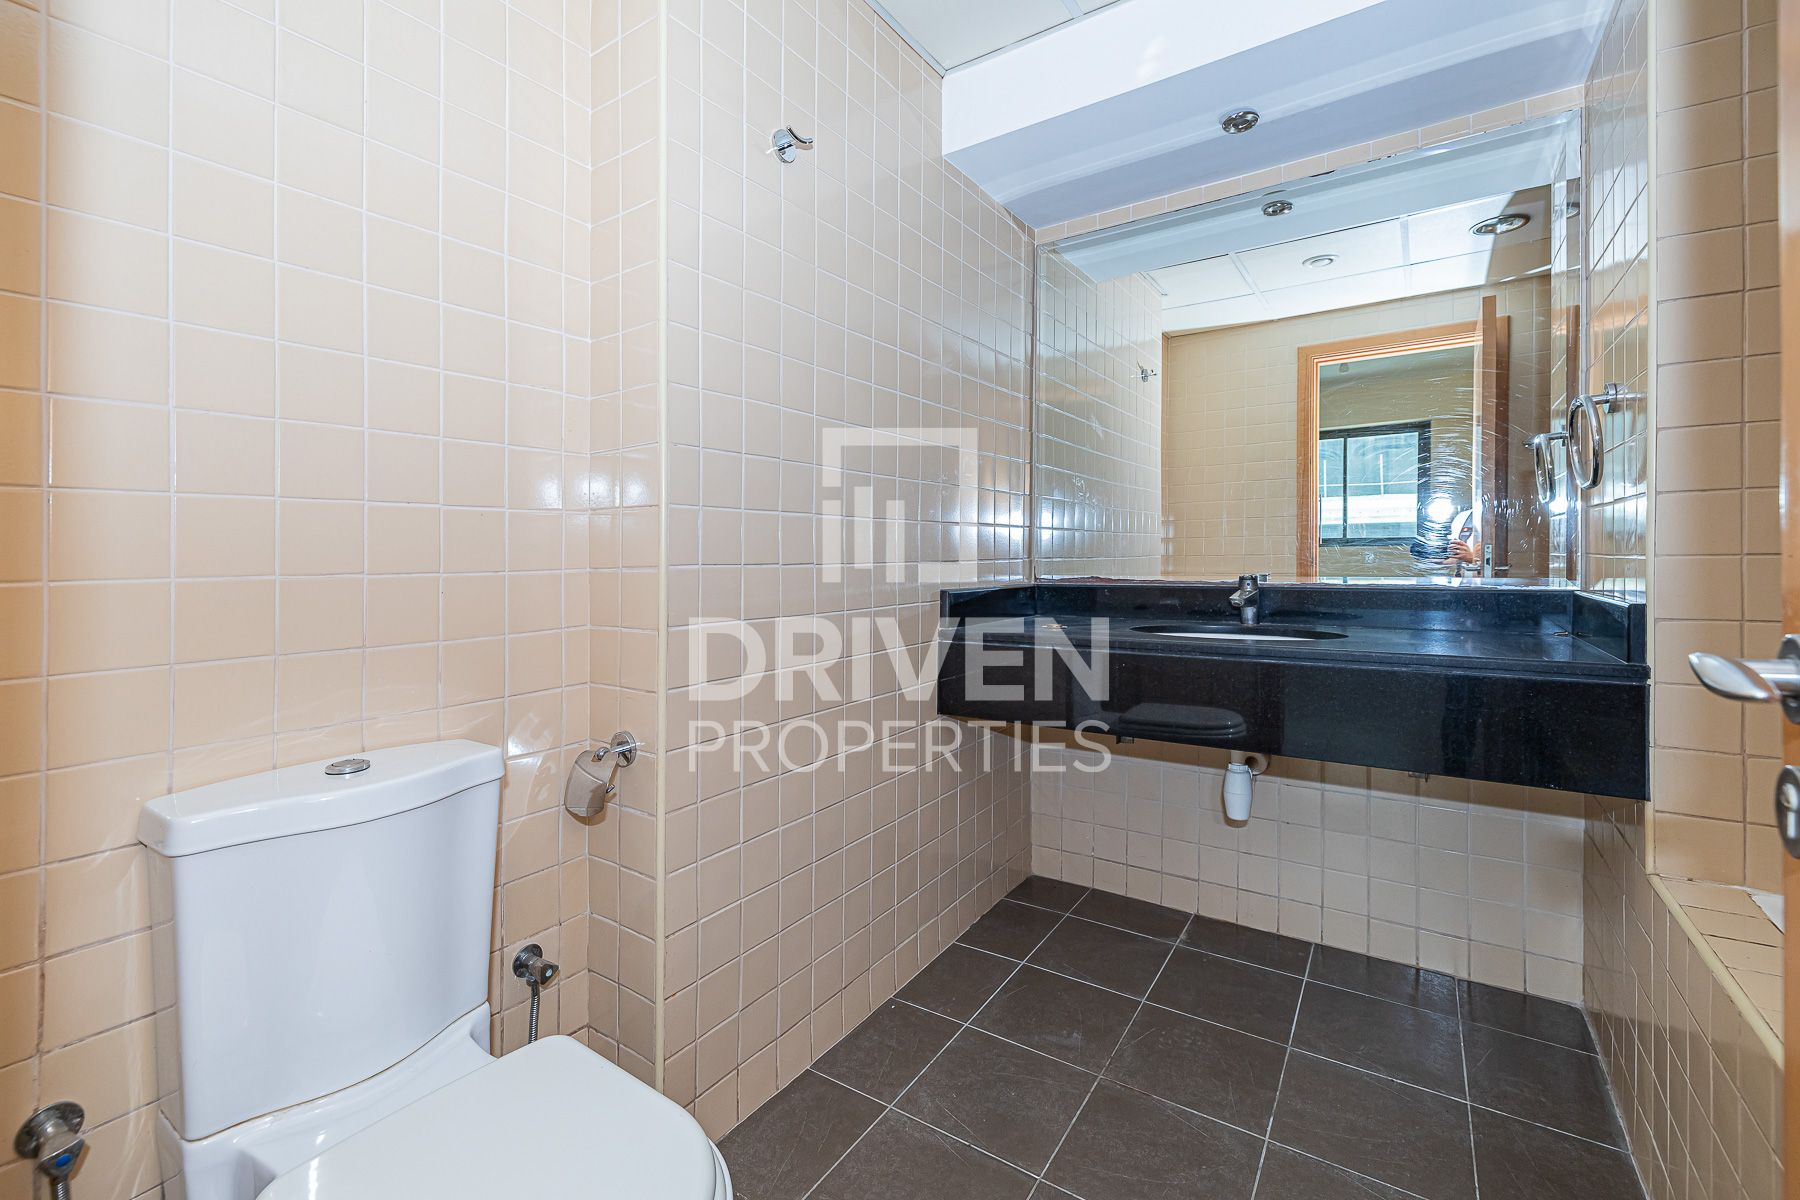 Apartment for Sale in Sapphire Residence - Dubai Silicon Oasis